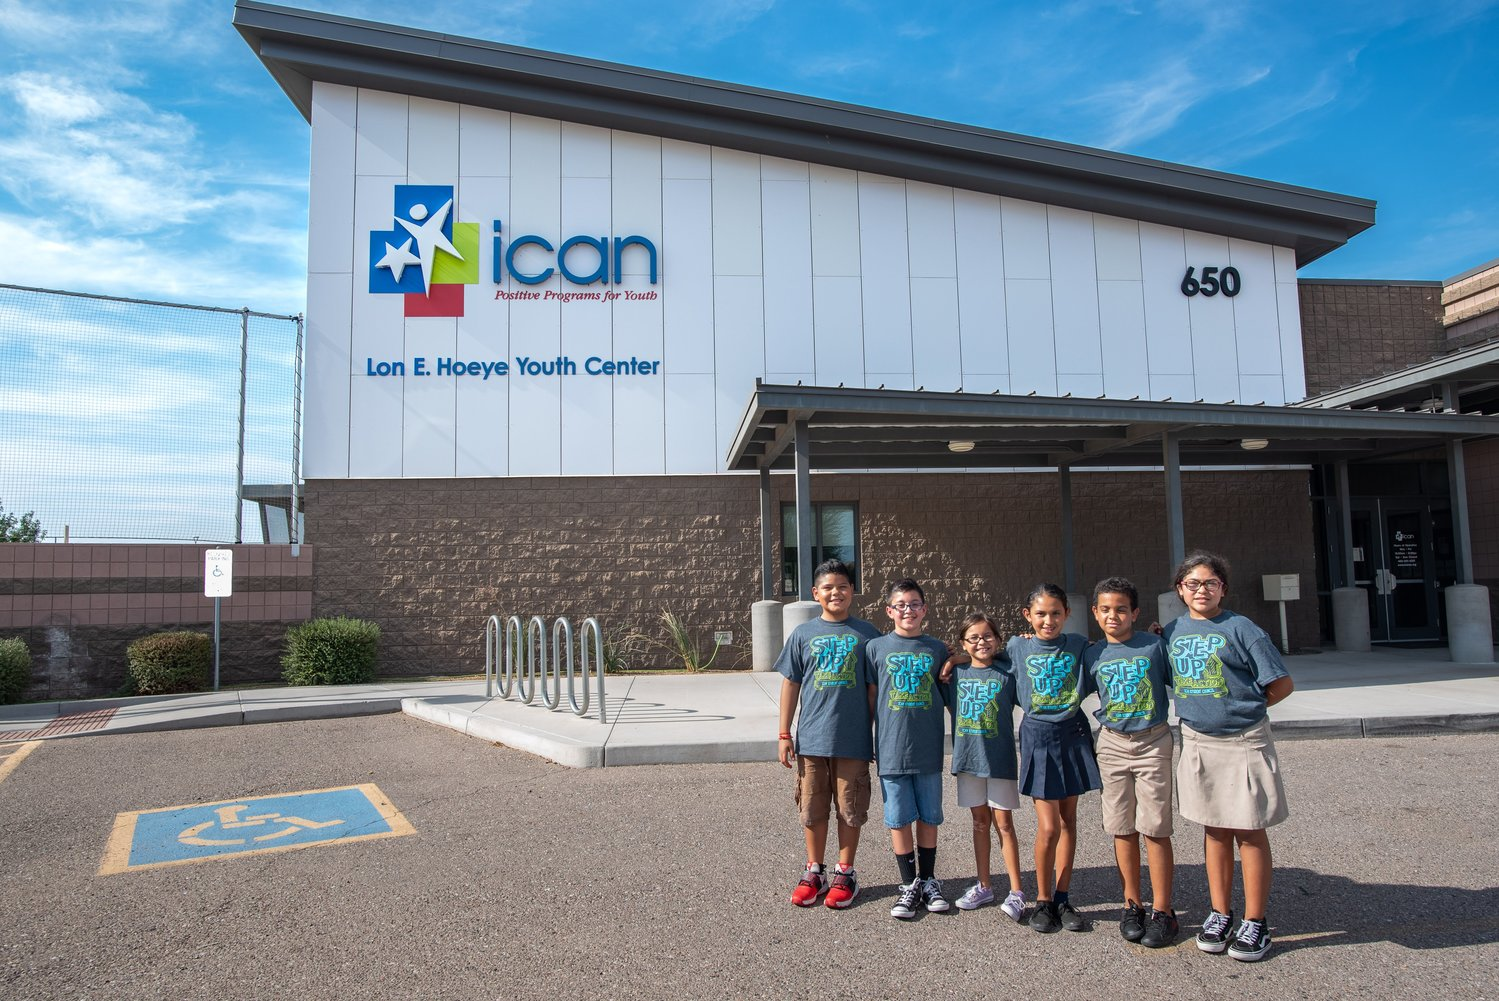 ICAN is located in the heart of downtown Chandler where it all began 30 years earlier.